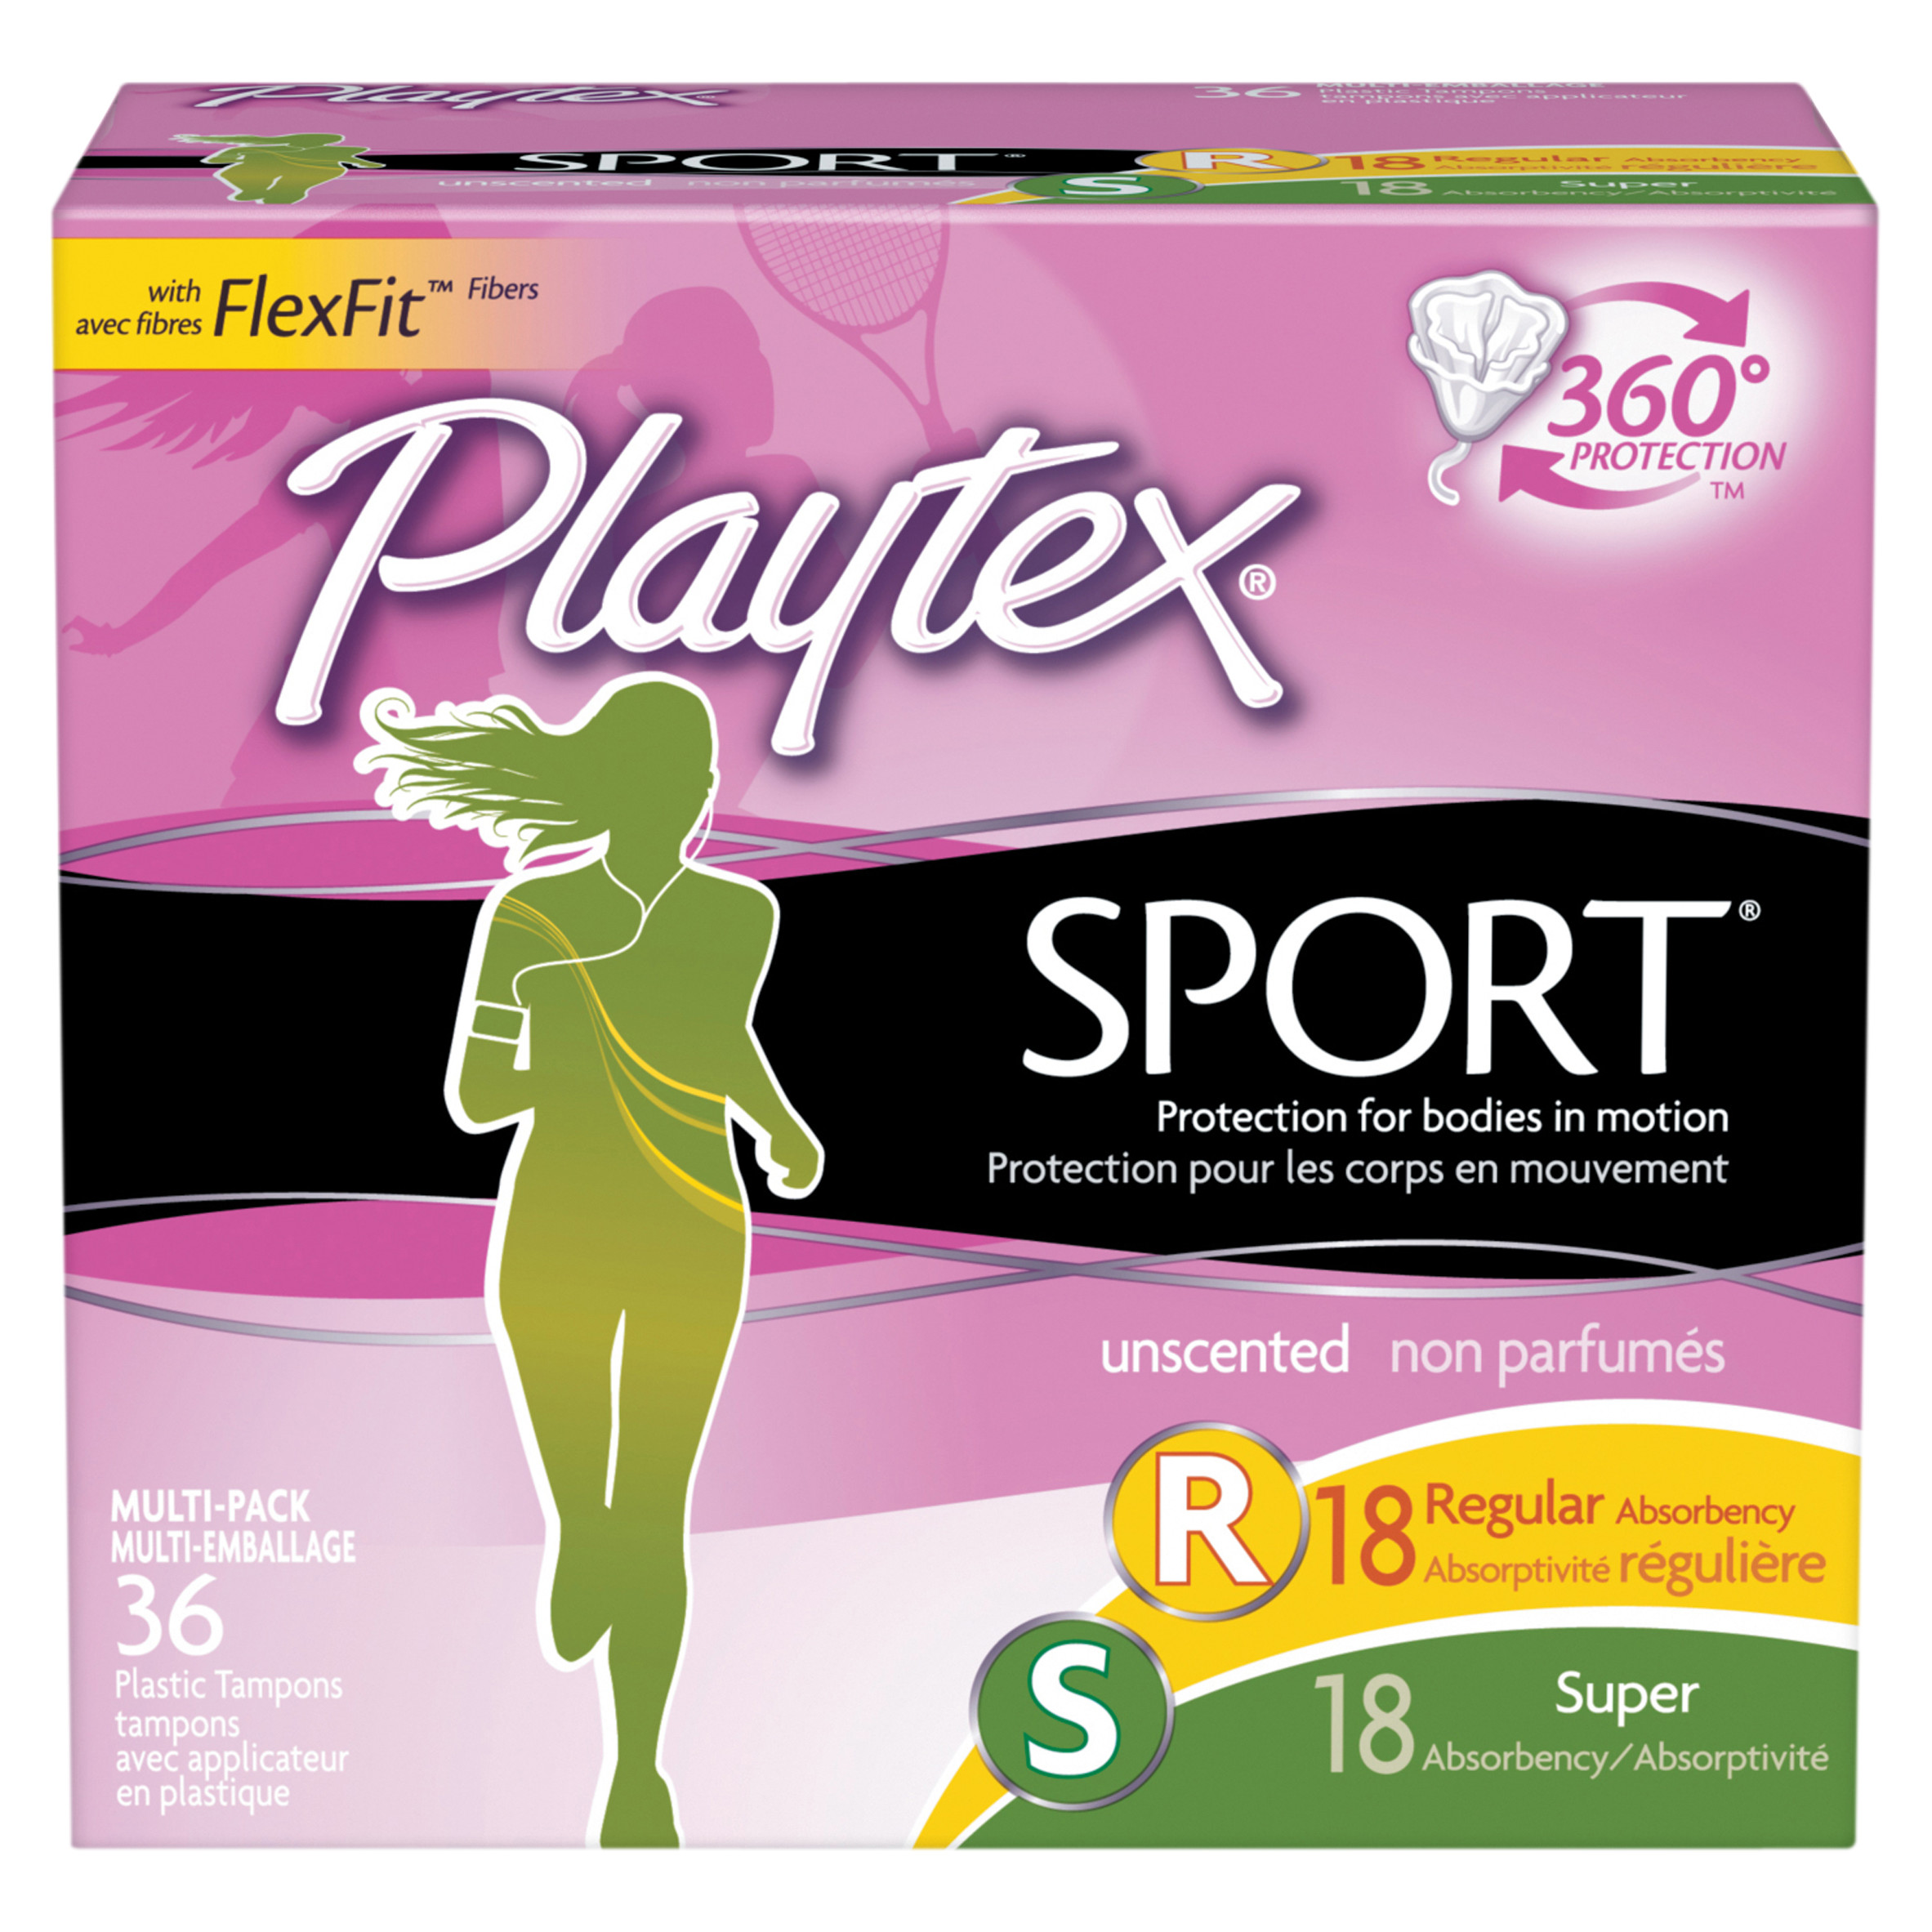 Playtex Sport Tampons Unscented Multi-Pack 18 Regular Absorbency And 18 Super Absorbency - 36 Count